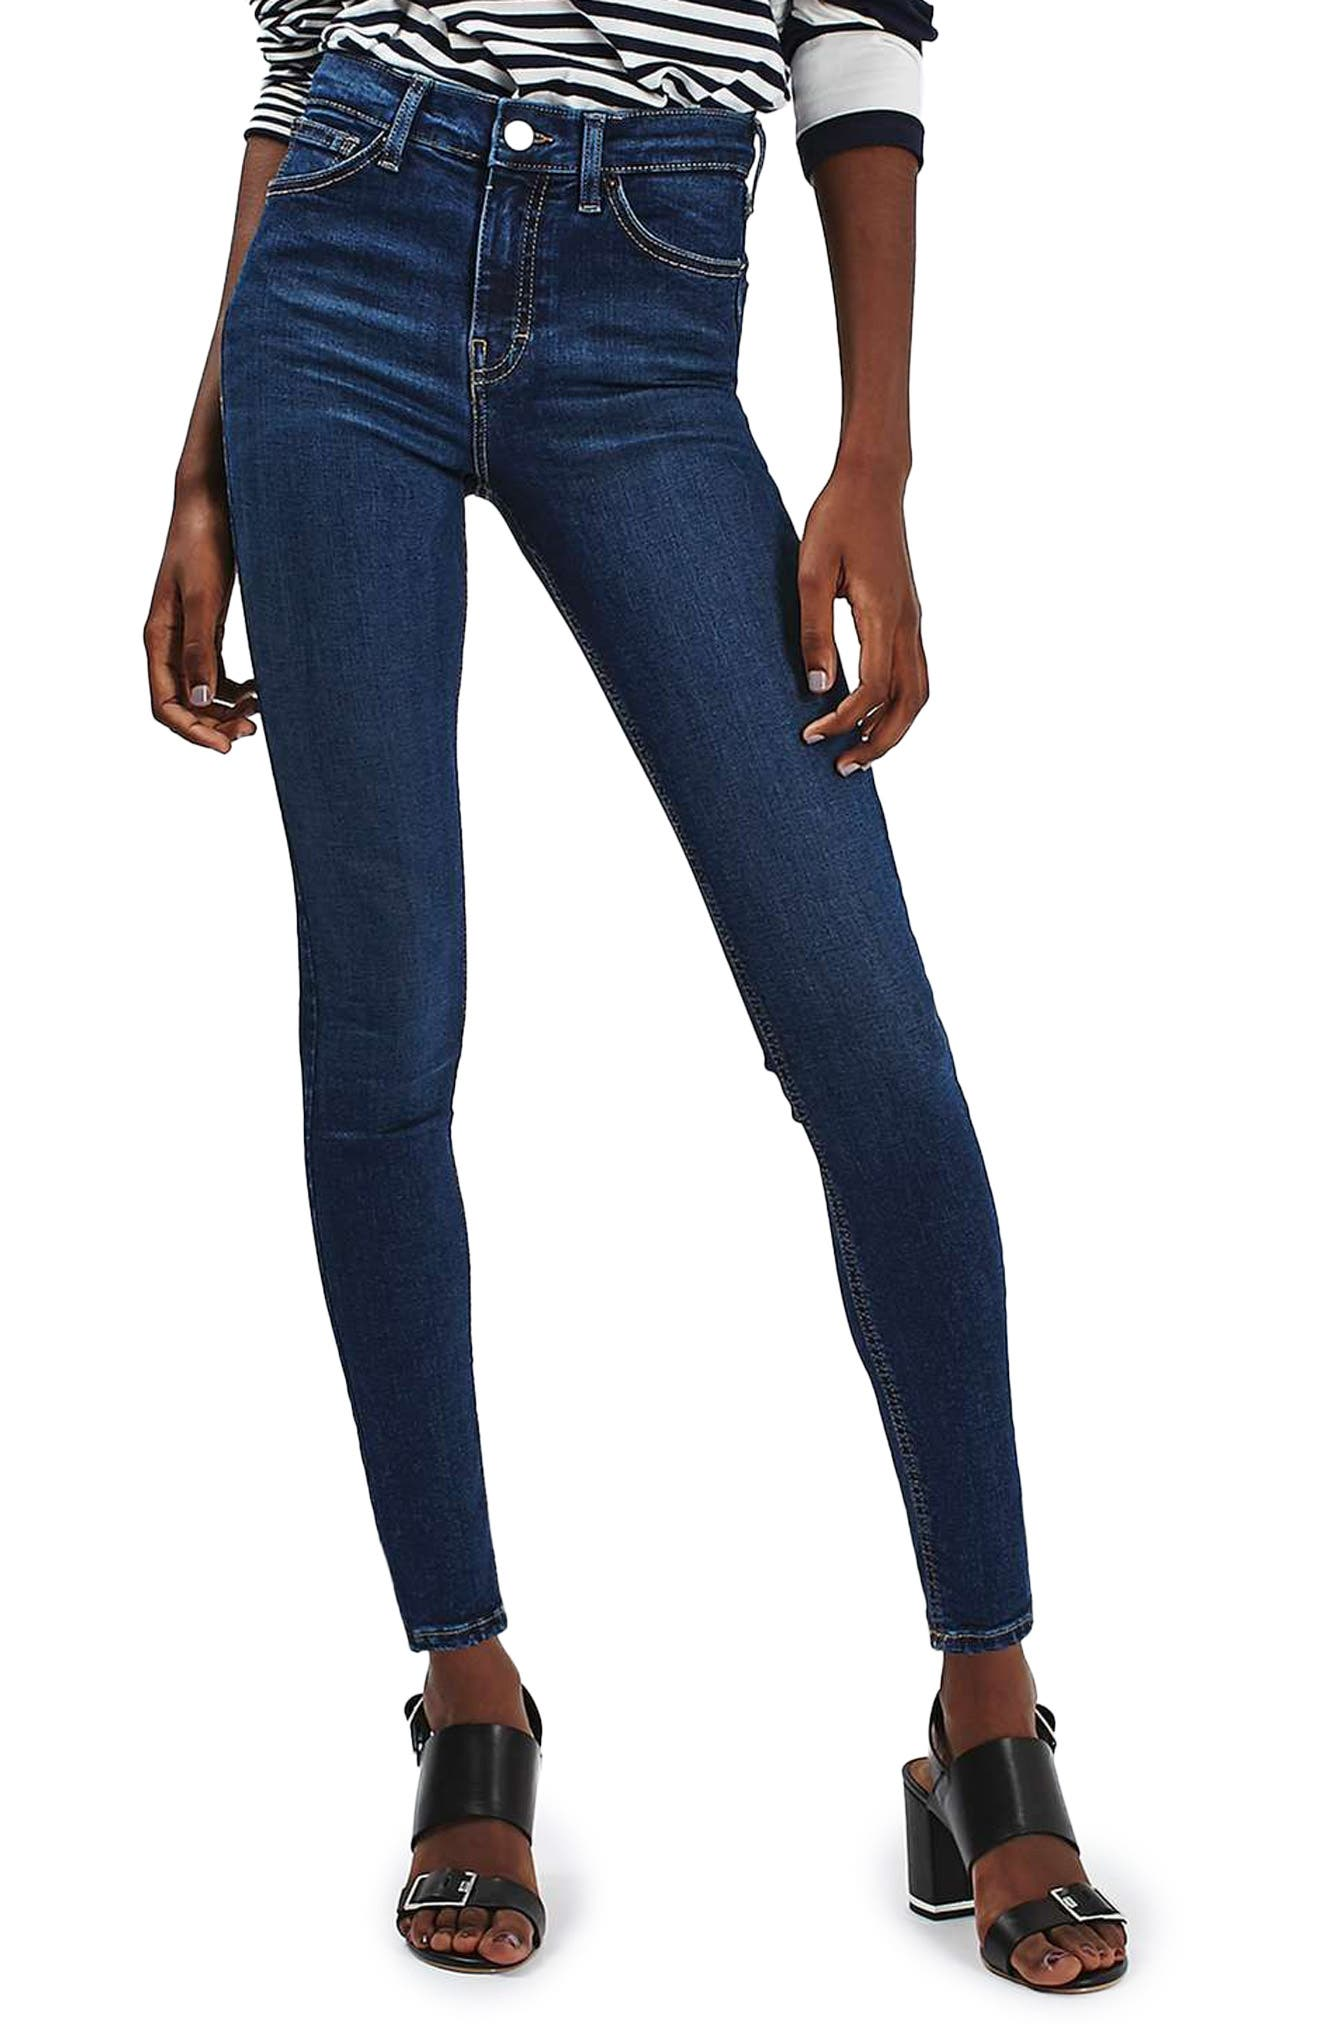 Jamie High Waist Ankle Skinny Jeans,                             Main thumbnail 1, color,                             401